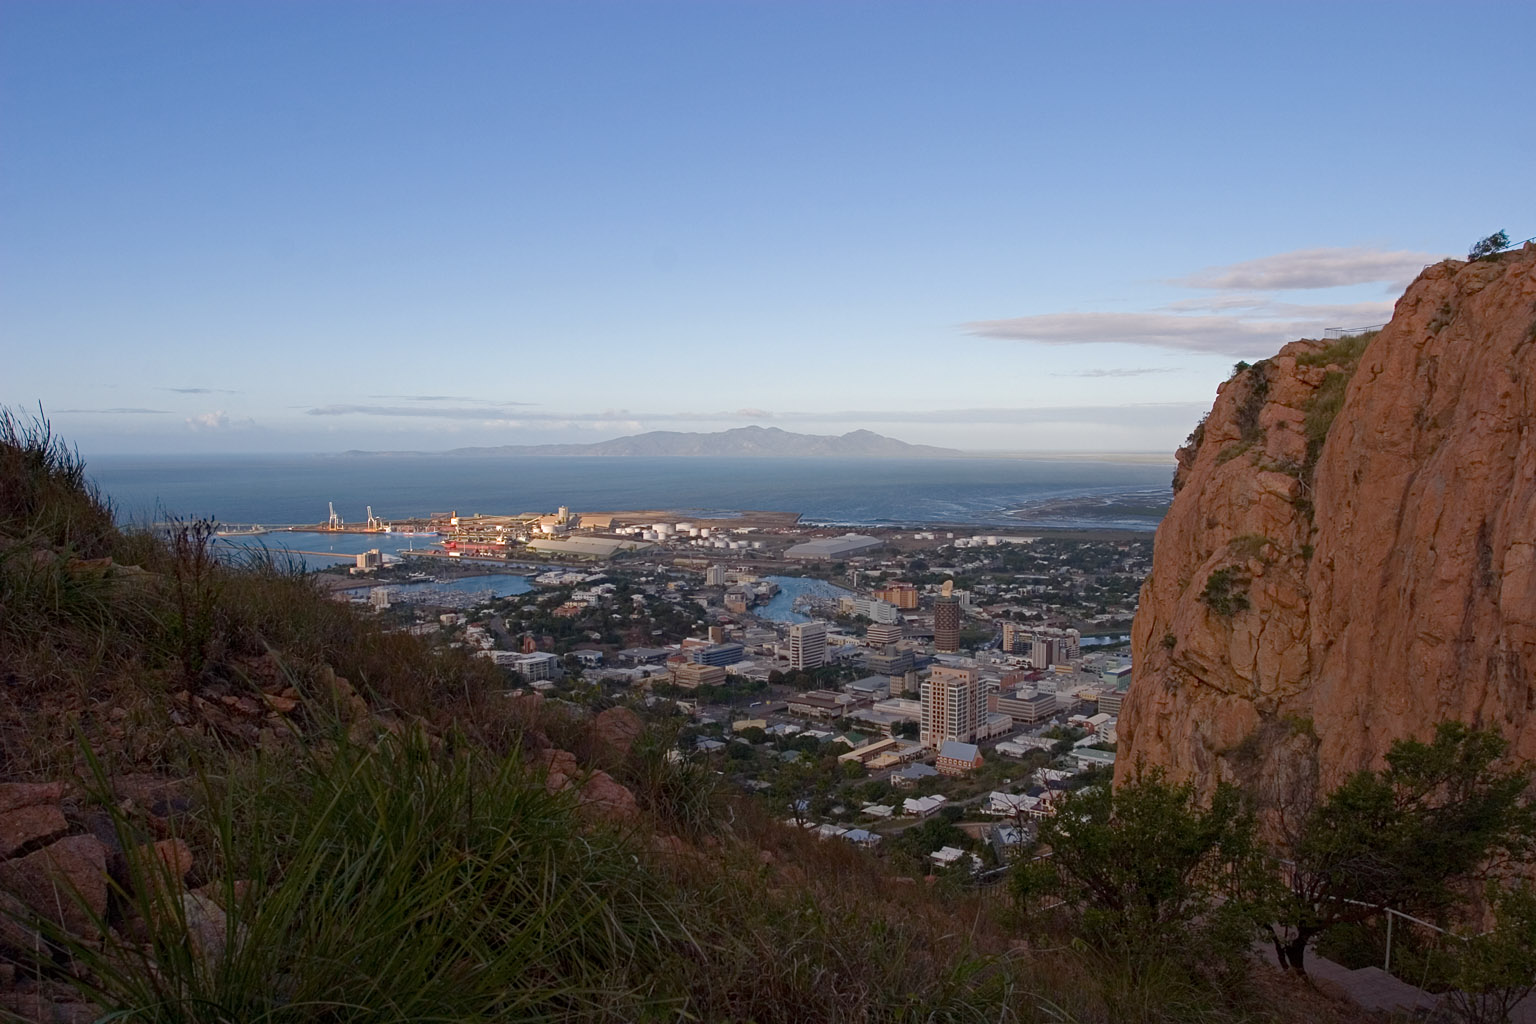 Depiction of Townsville